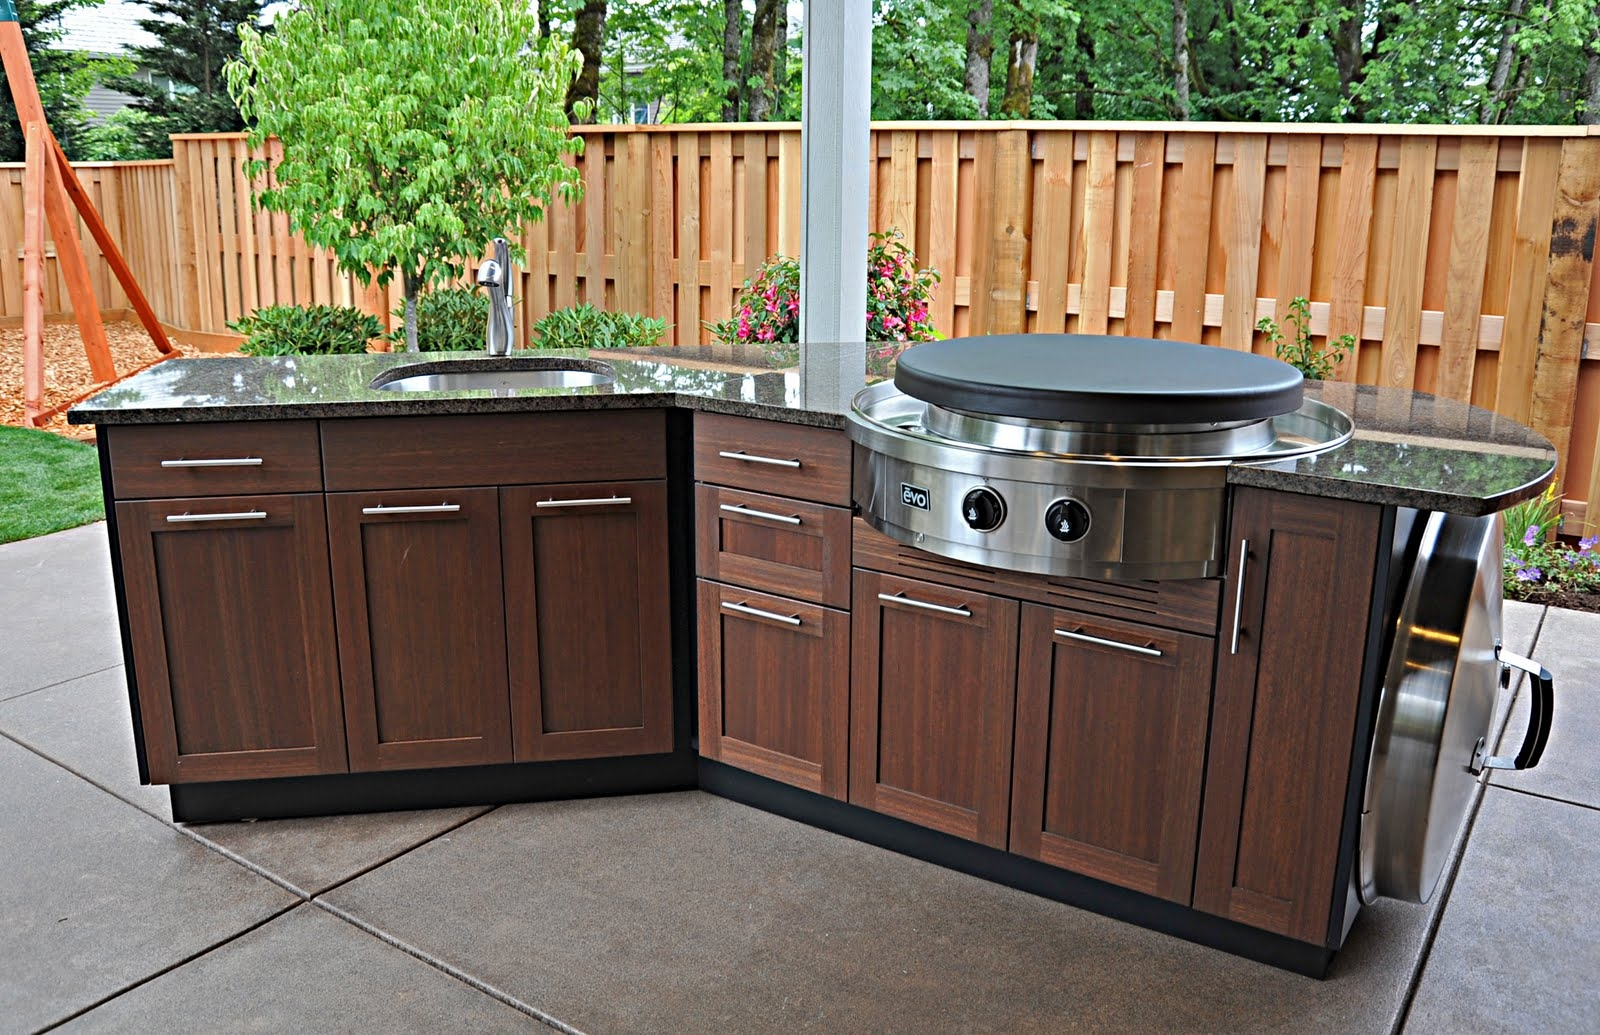 Modular Cabinets For Outdoor Kitchen